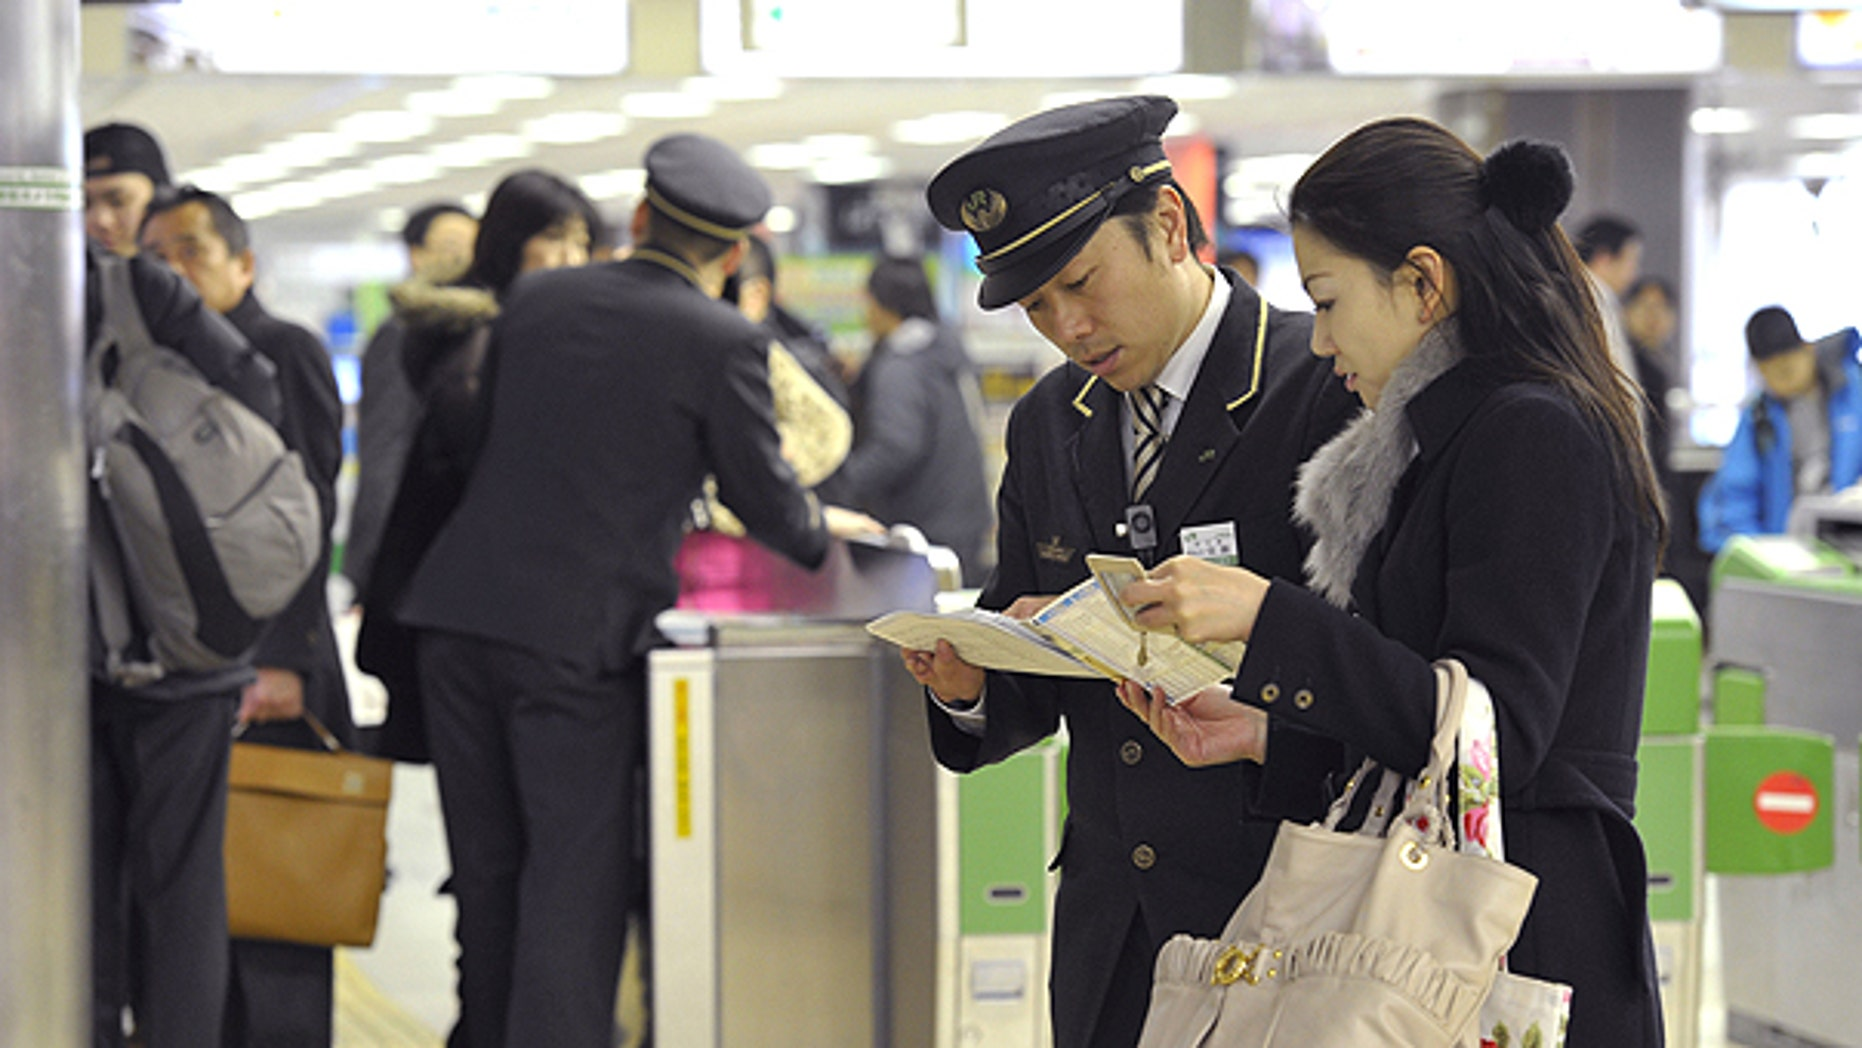 March 9: Japan Railway Sendai Station staff help stranded bullet train passengers as the high-speed train service is suspended at the station in Sendai, north of Tokyo, following a magnitude 7.3 earthquake hit northern Japan.